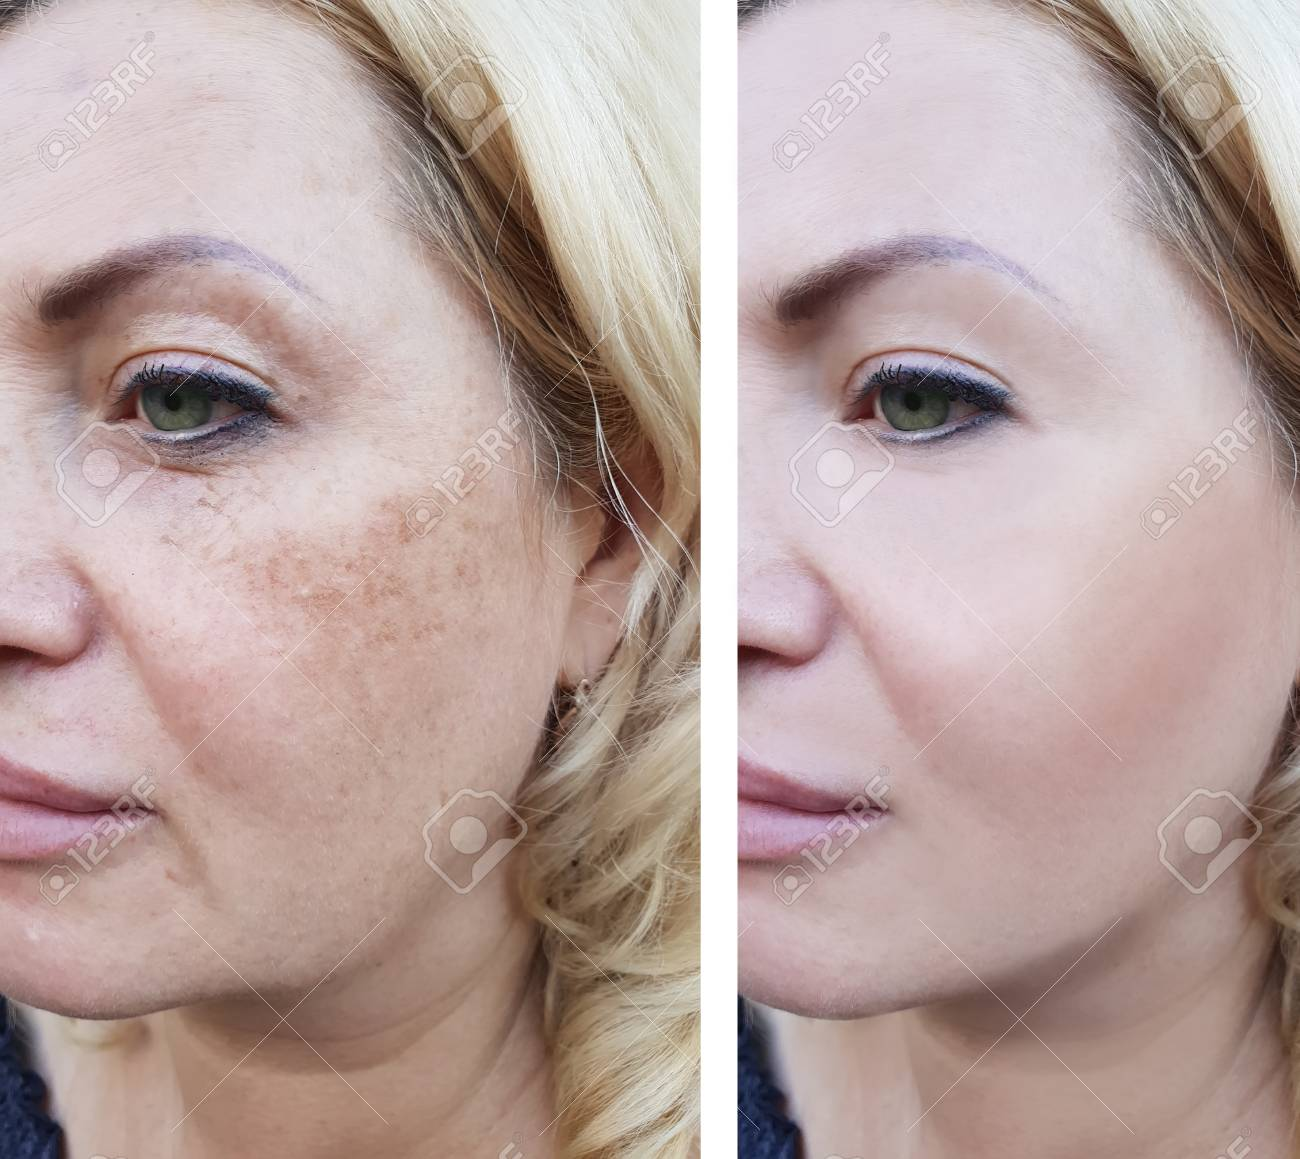 Woman wrinkles before and after pigmentation - 108498561